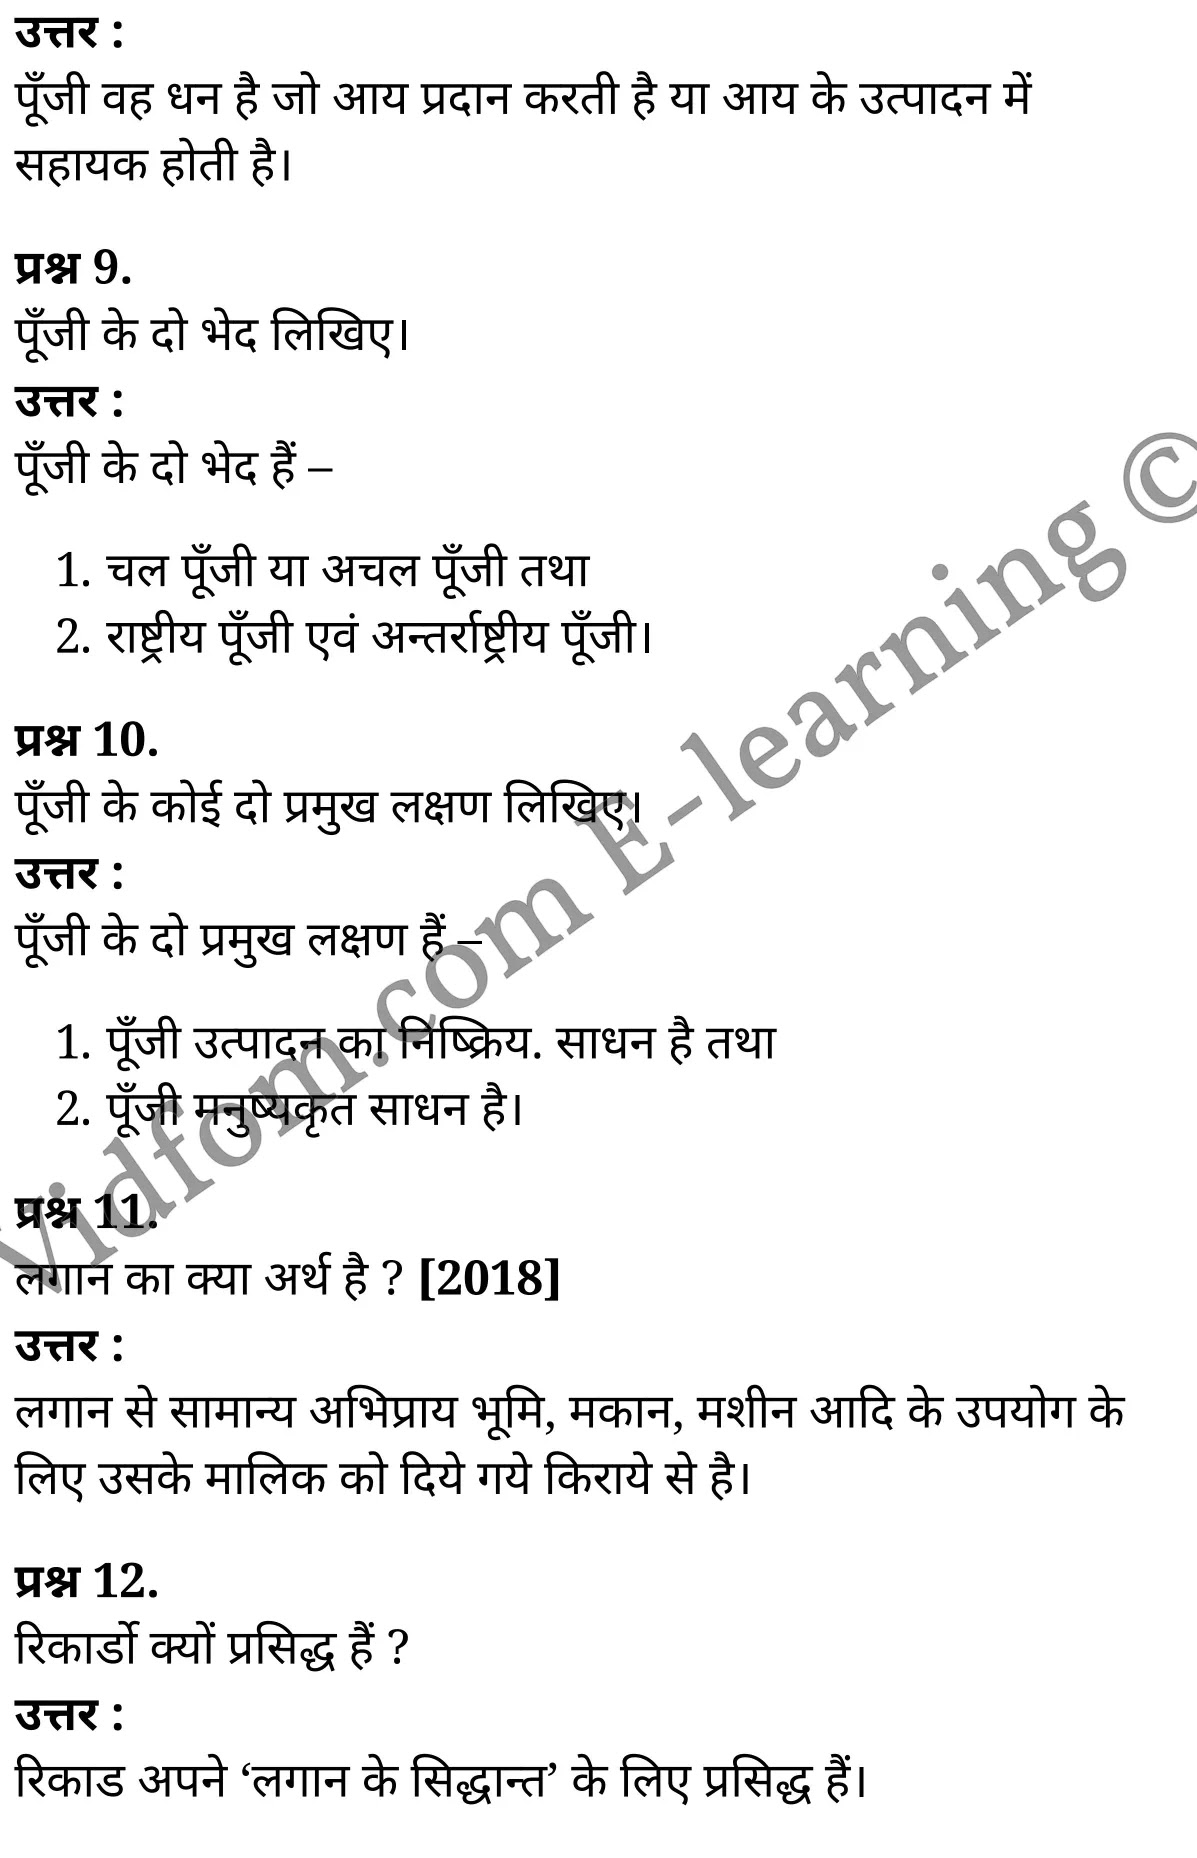 class 10 social science chapter 2 section 4 46